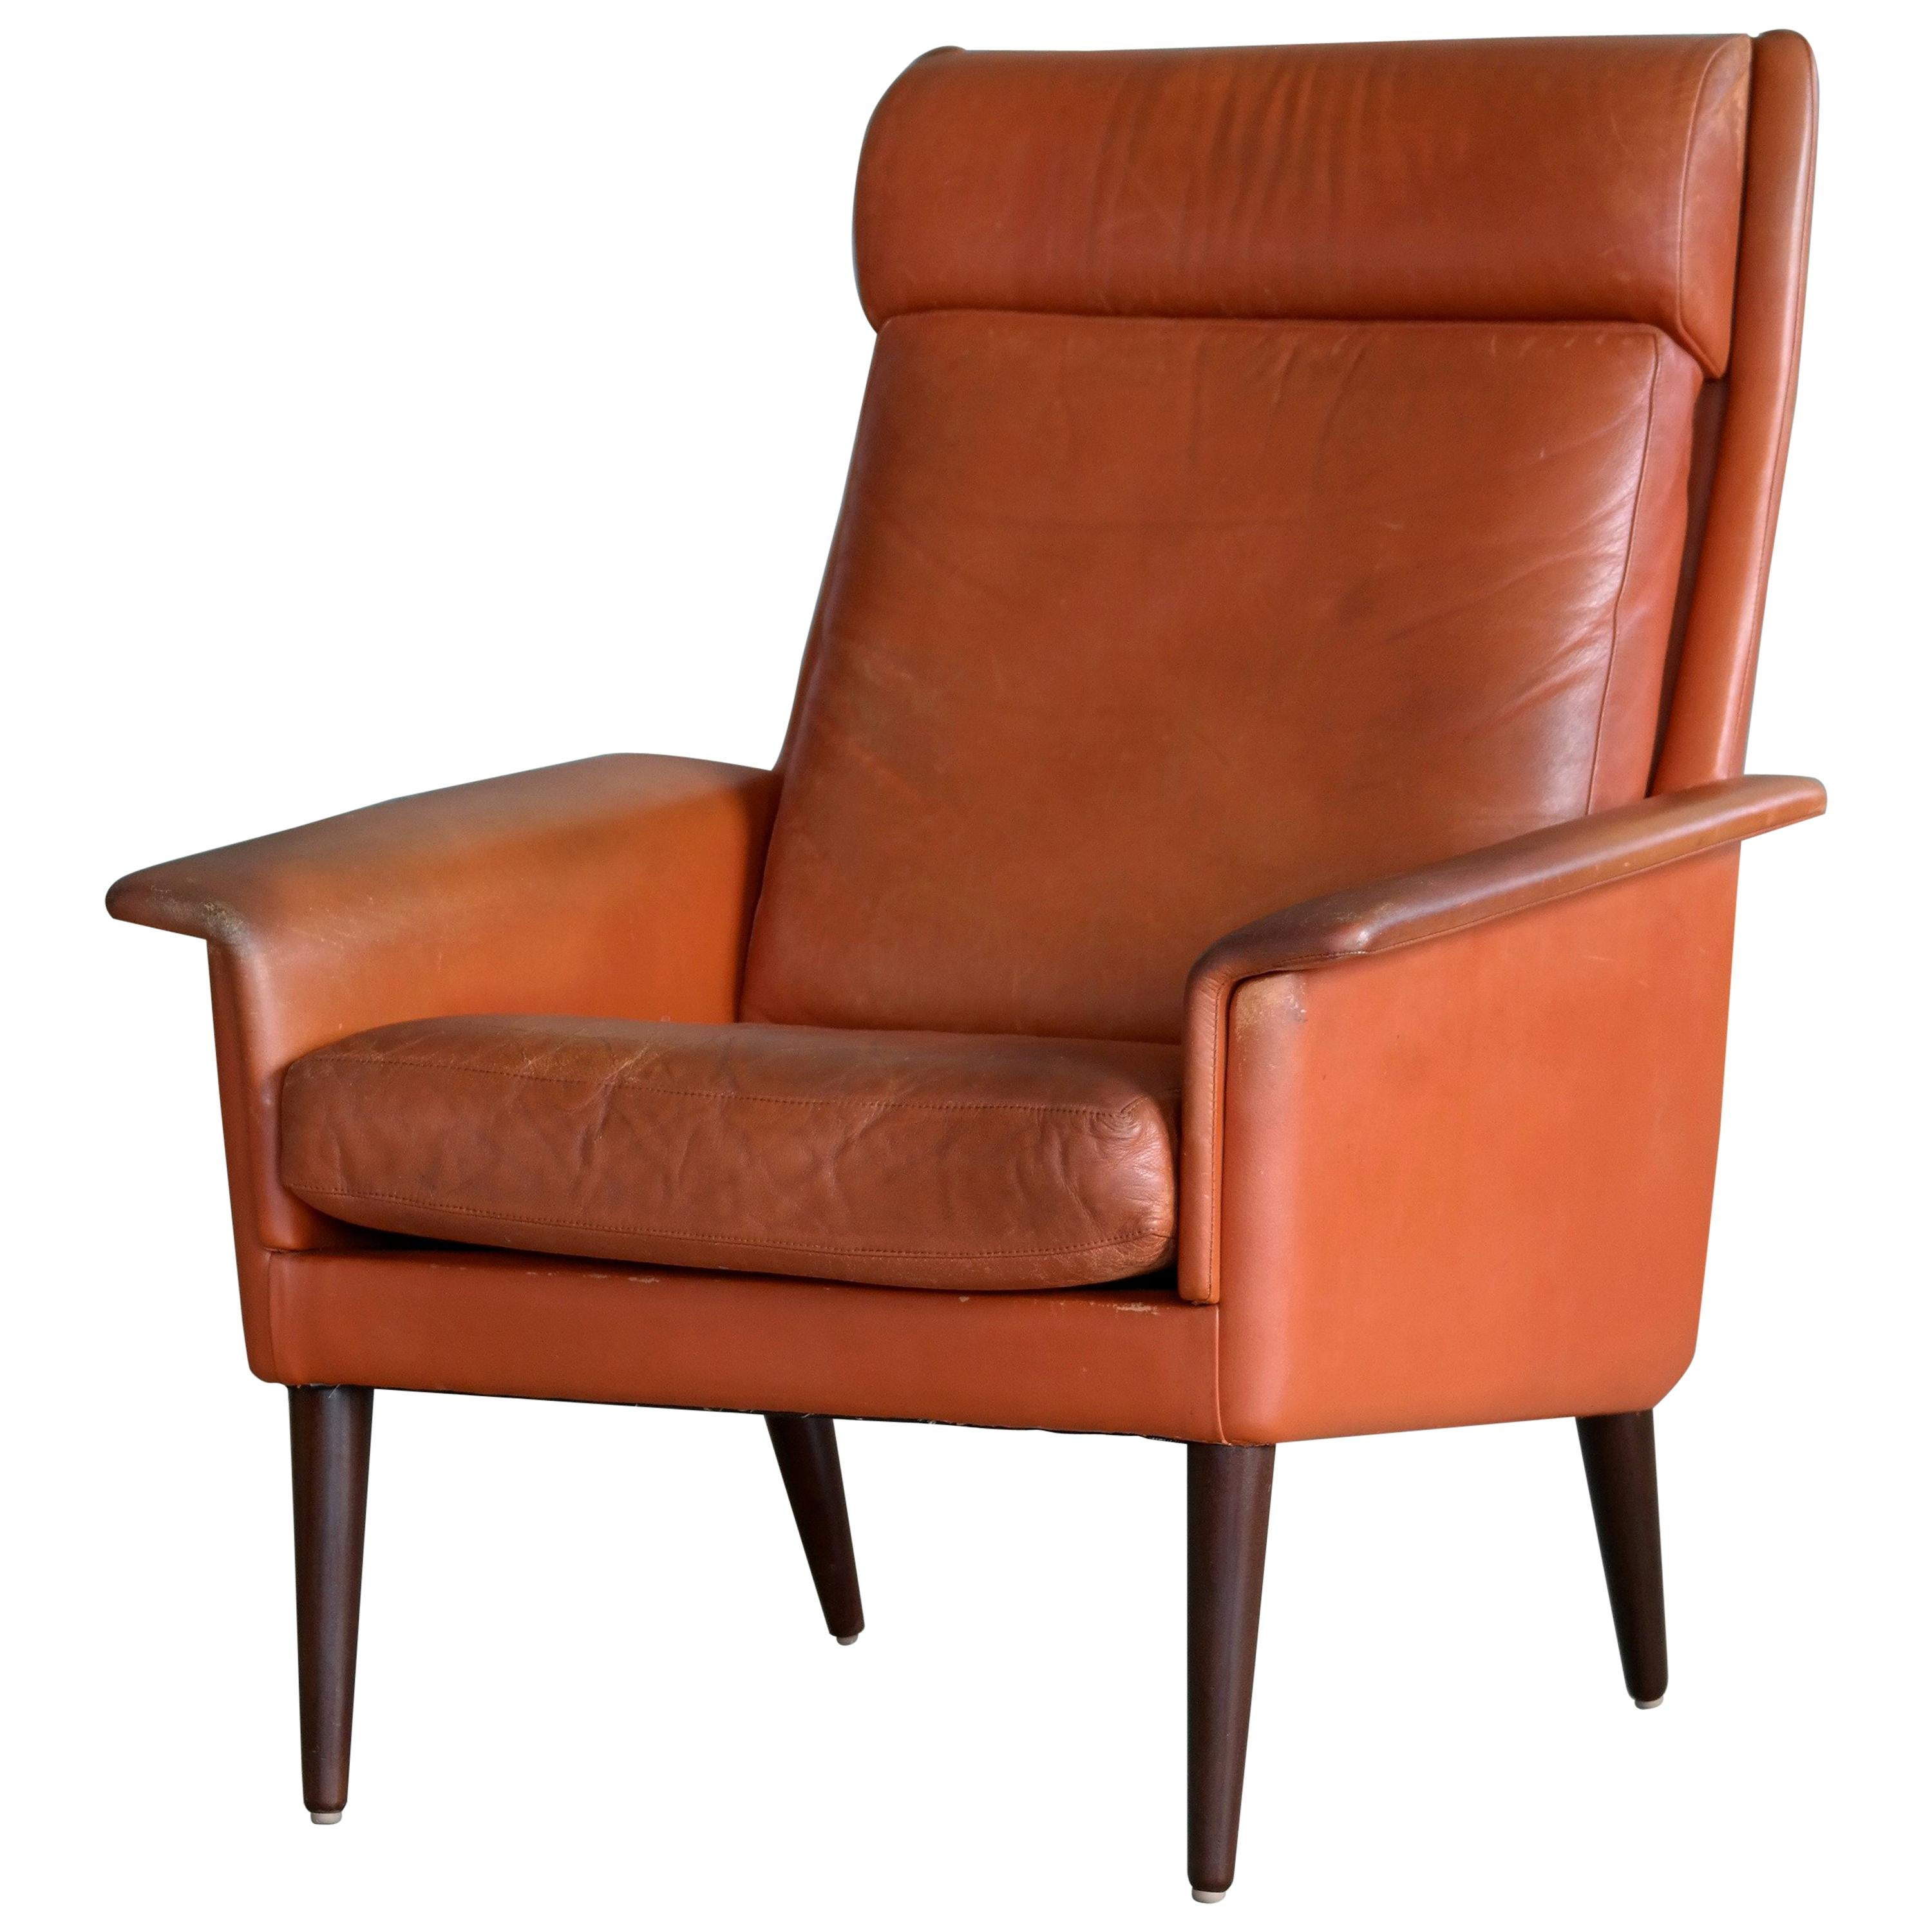 Danish Midcentury Cognac Colored High Back Lounge Chair by Sibast